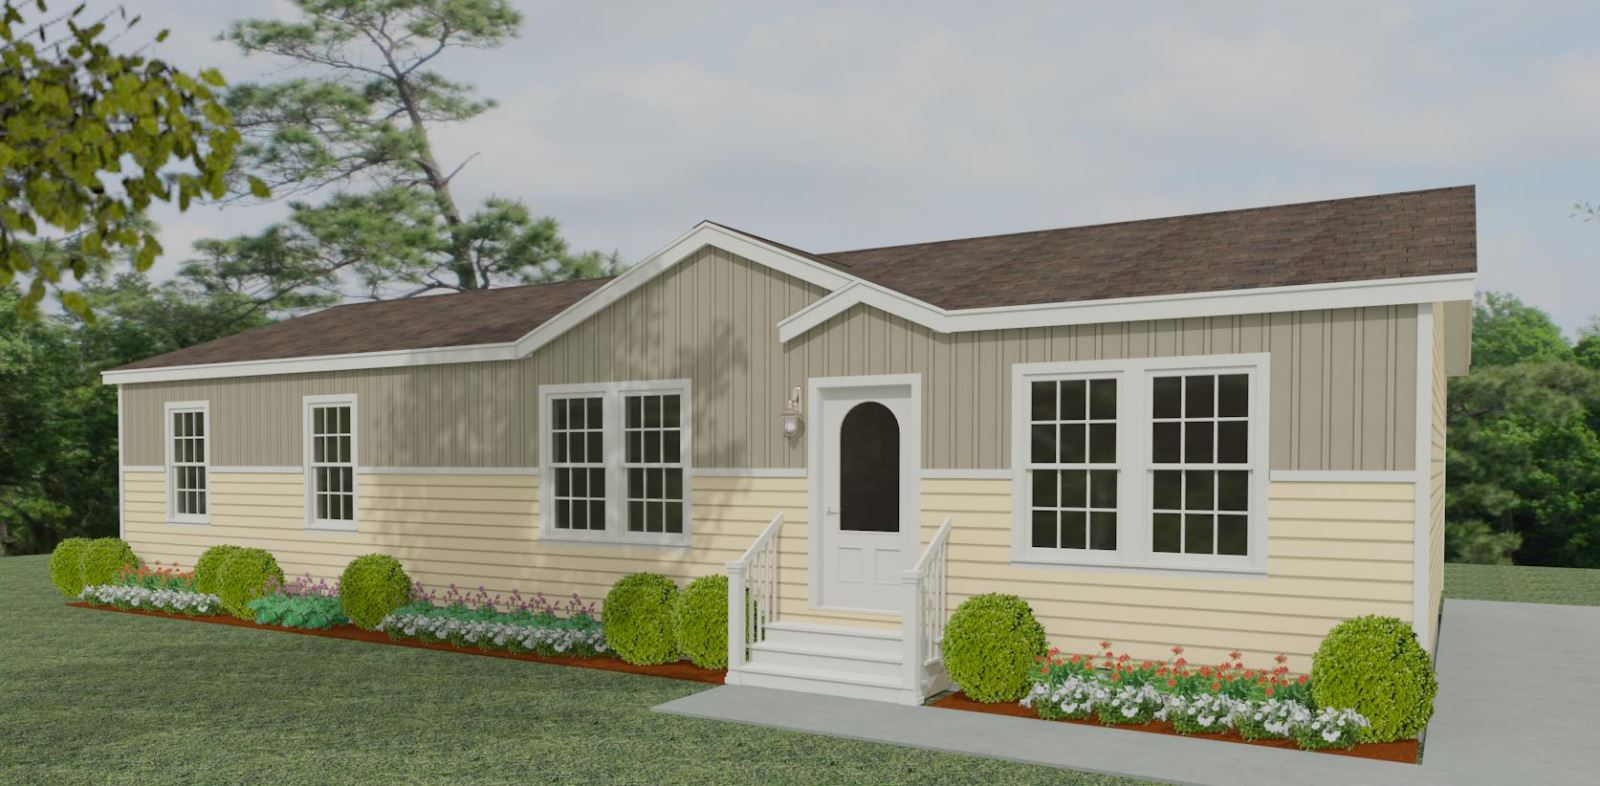 Exterior rendering Jacobsen Homes Floor Plan IMP-46411B